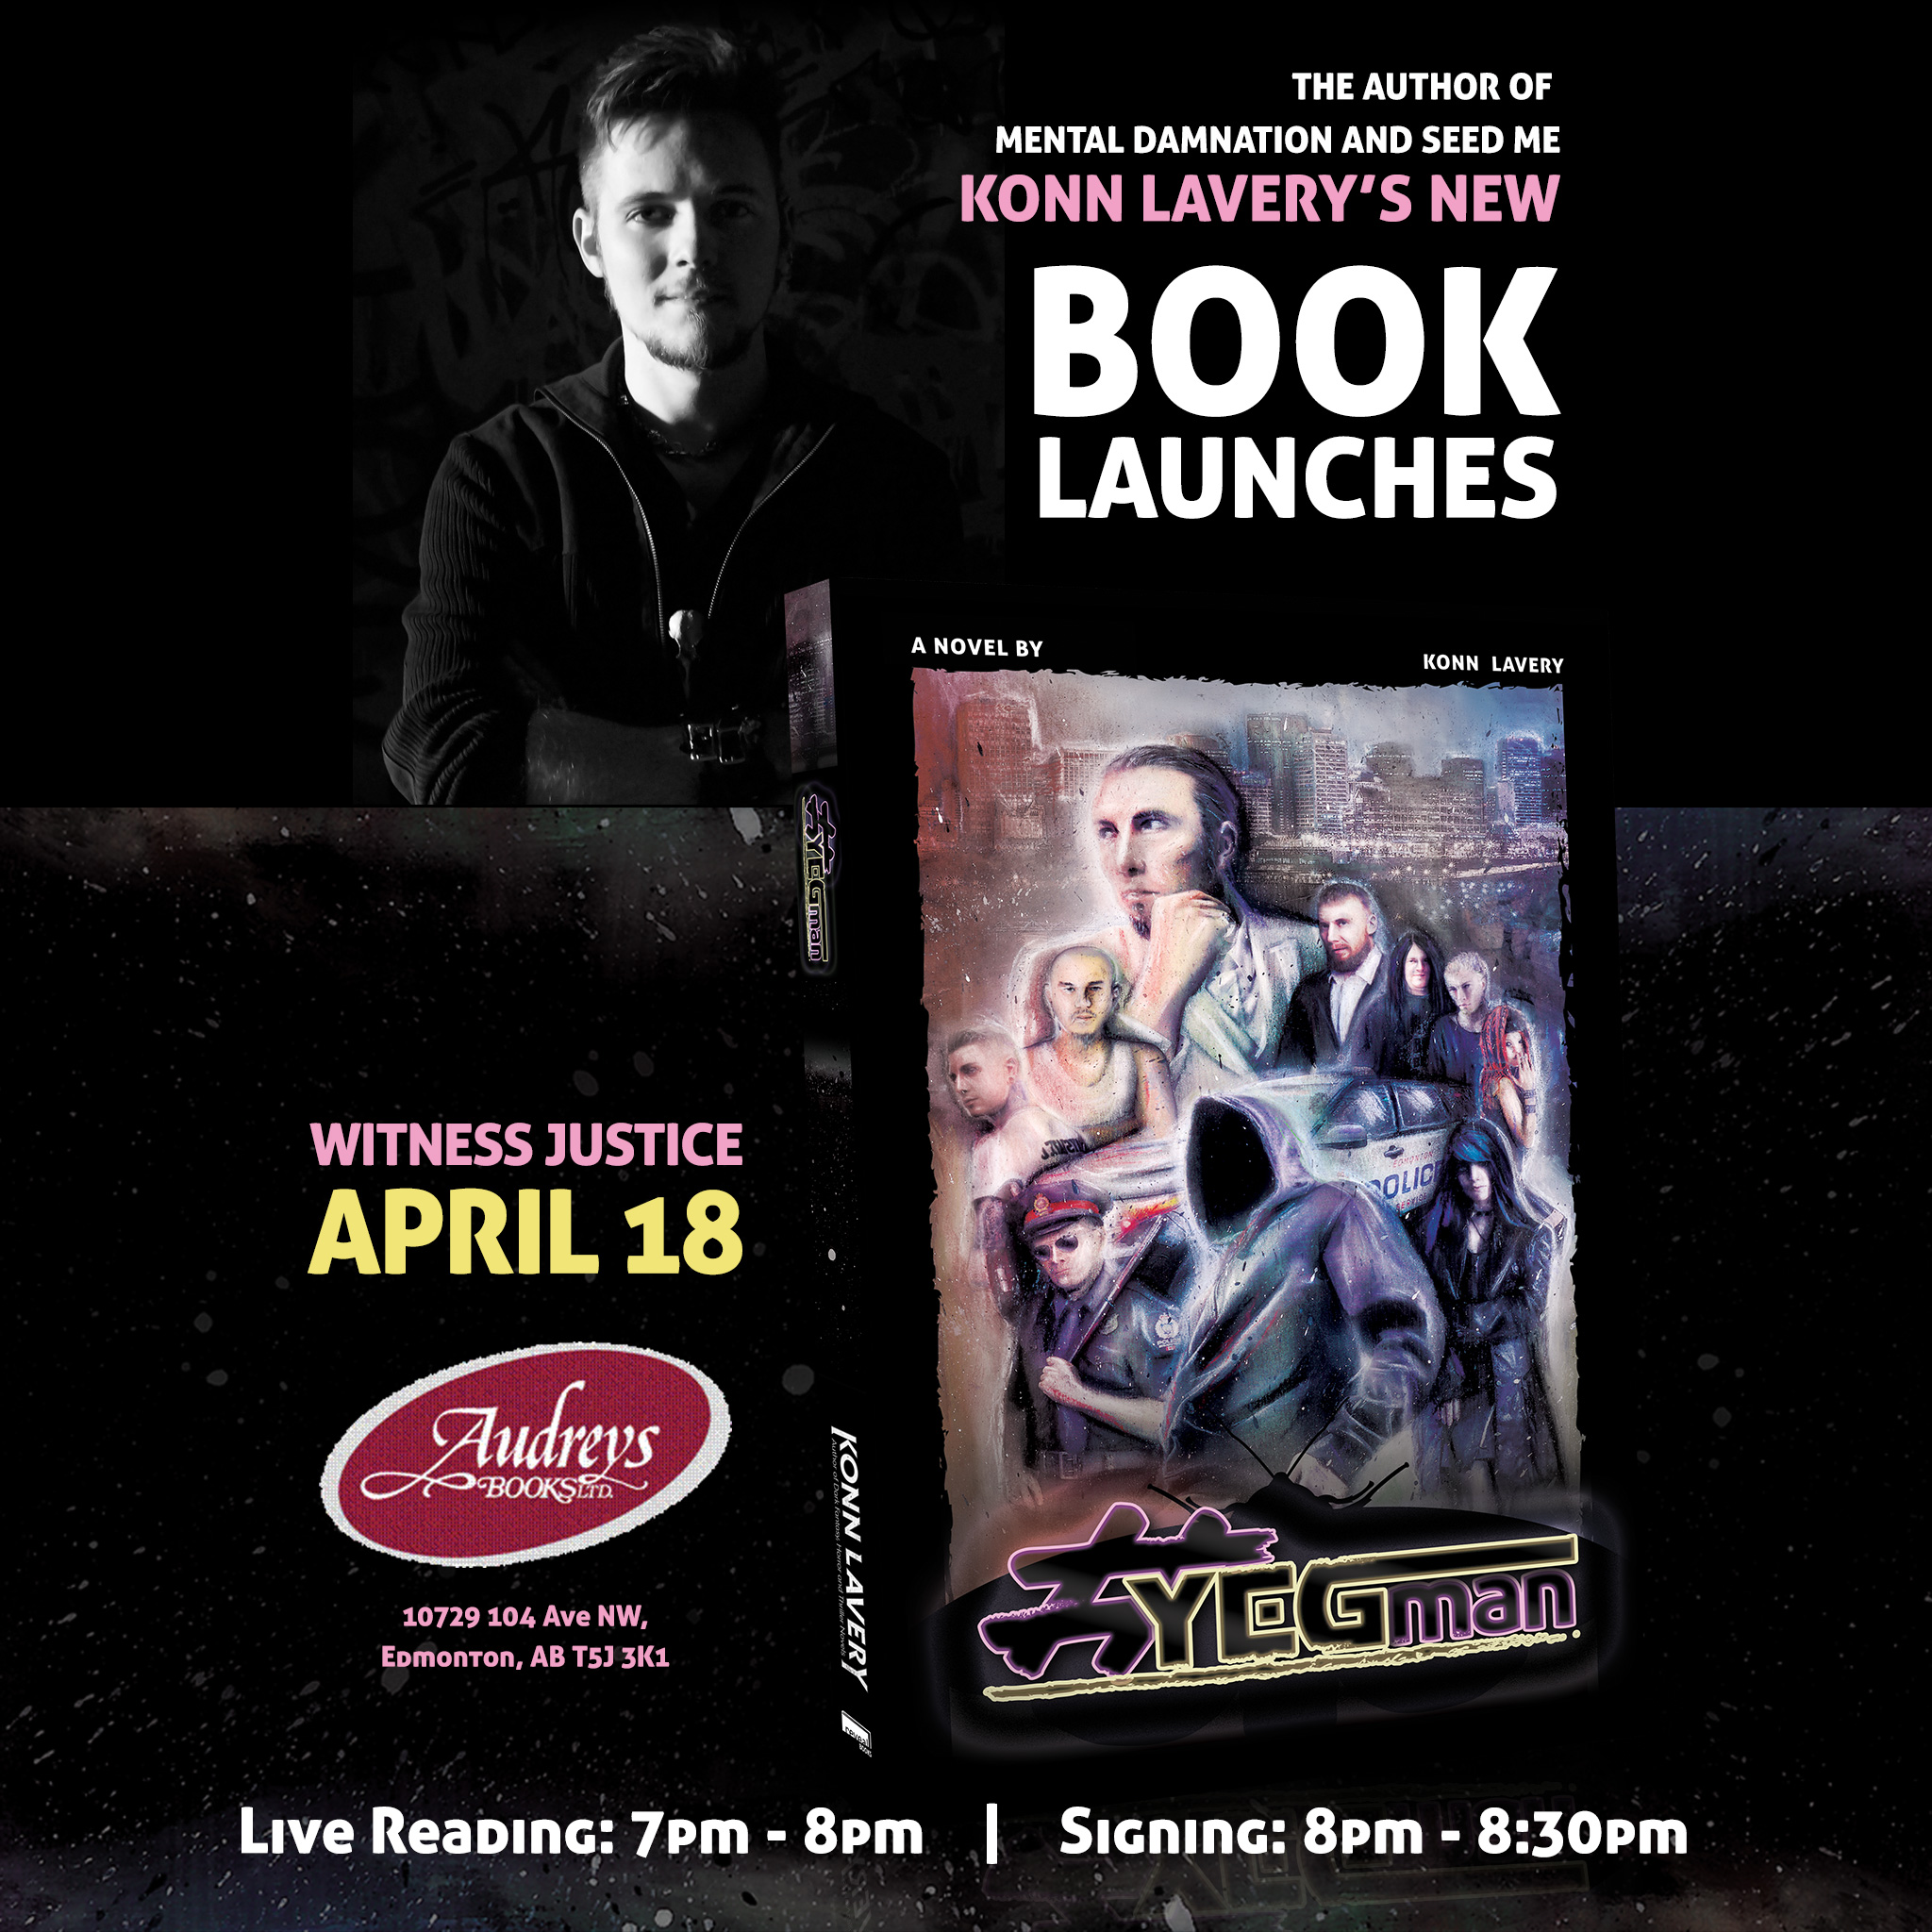 YEGman by Konn Lavery launches at Audreys Books